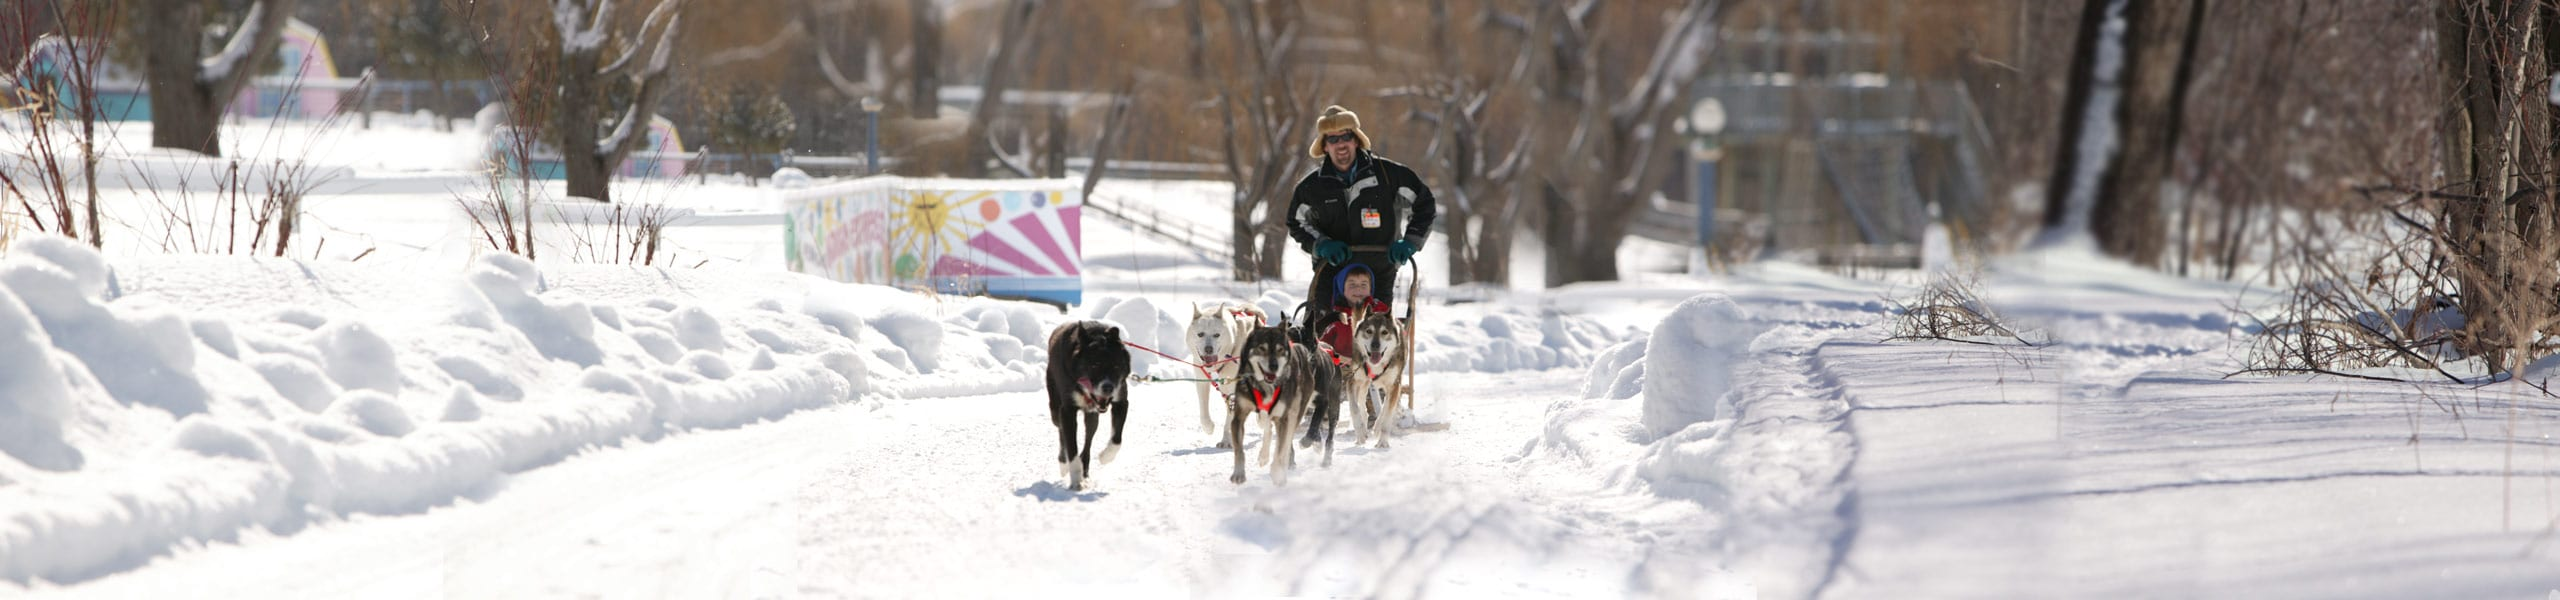 dogsled_back2